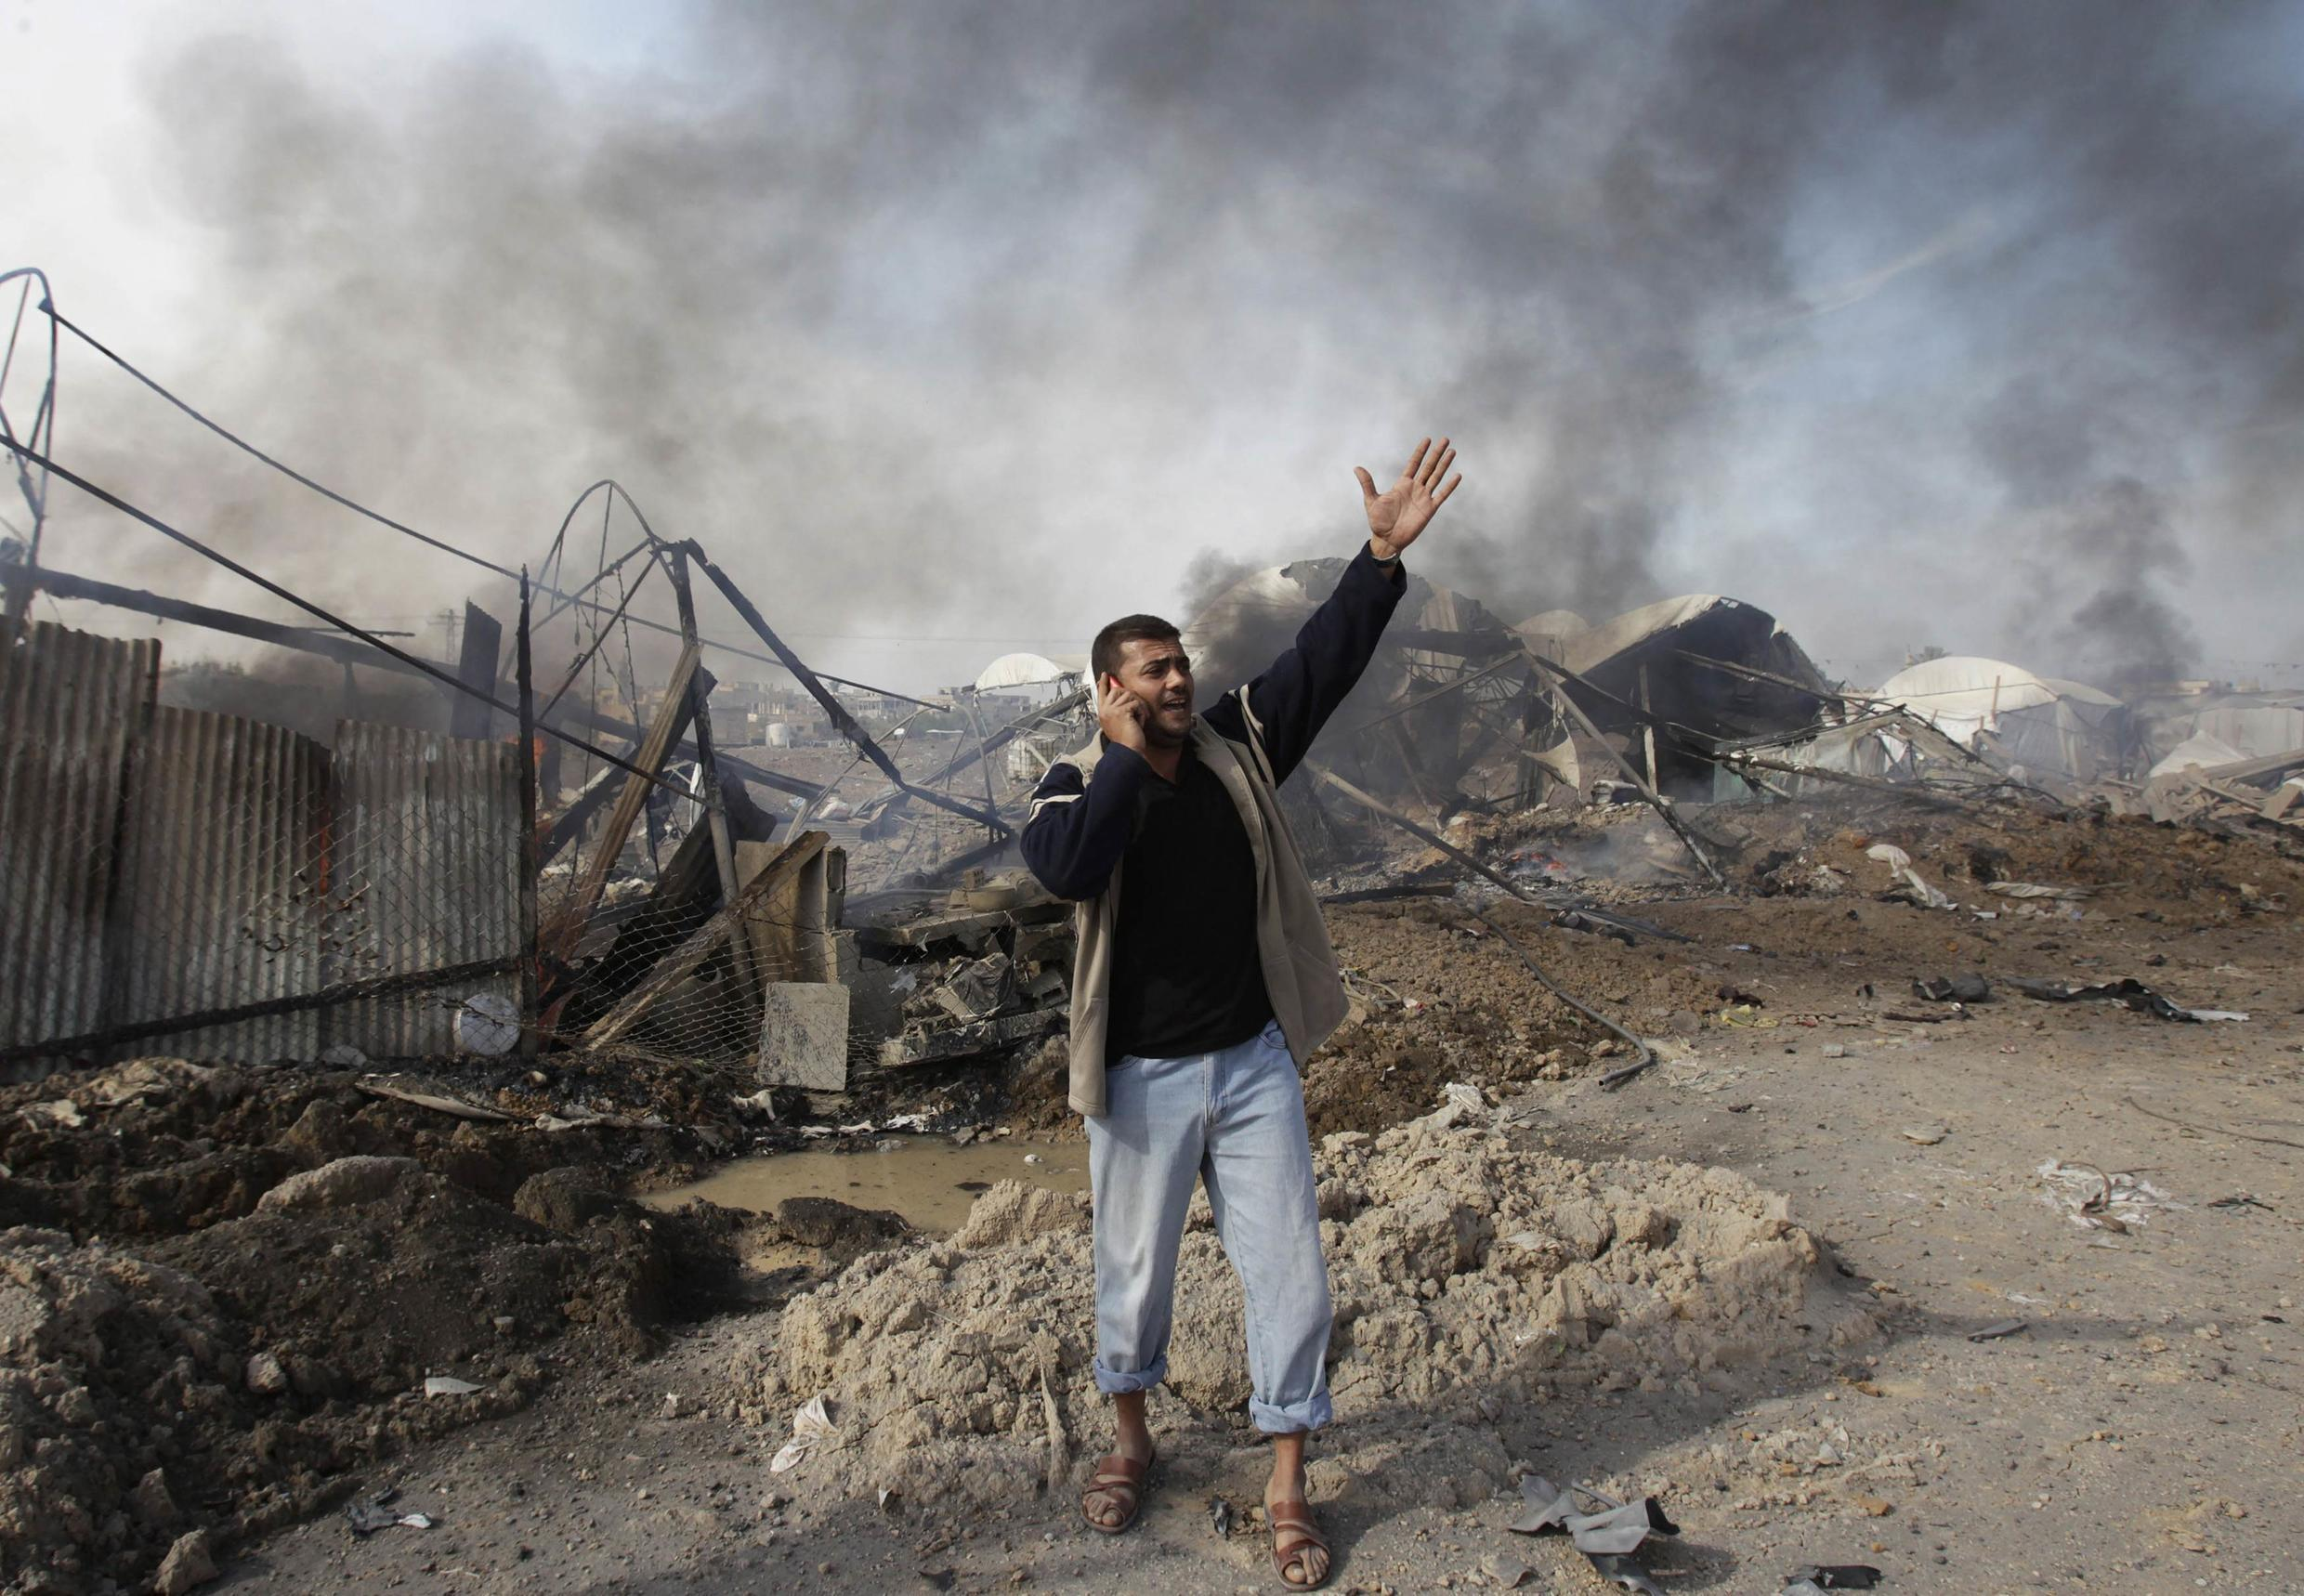 A Palestinian shouts in front of destroyed tunnels after an Israeli air strike in the border of southern Gaza Strip, 21 November, 2012